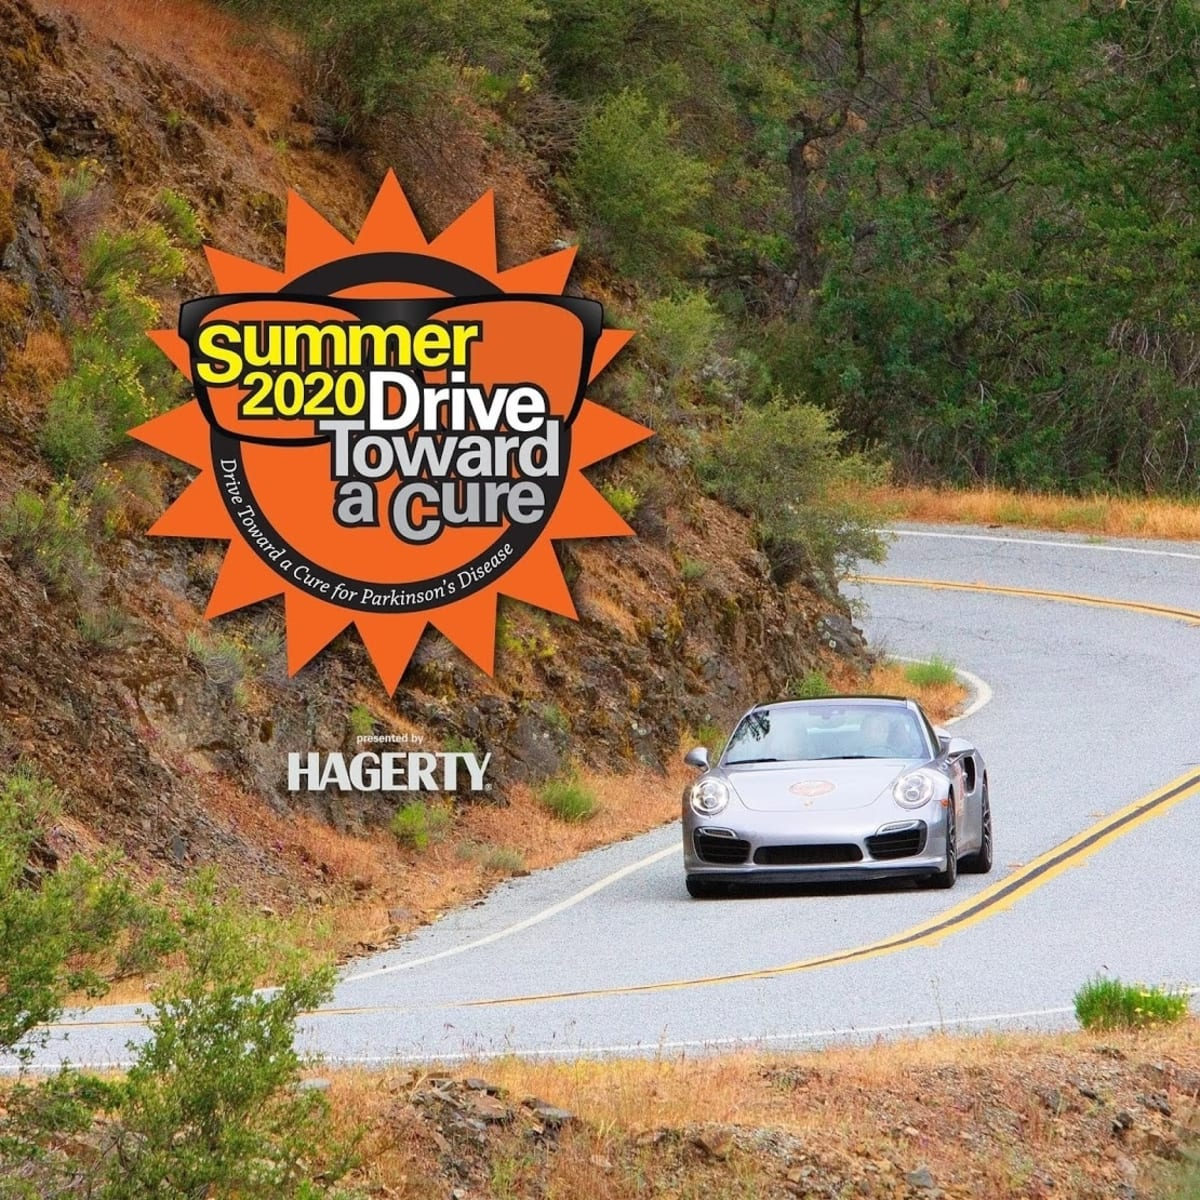 Drive Toward a Cure encourages motorists to go hit the open road, all while benefiting Parkinson's research and support.